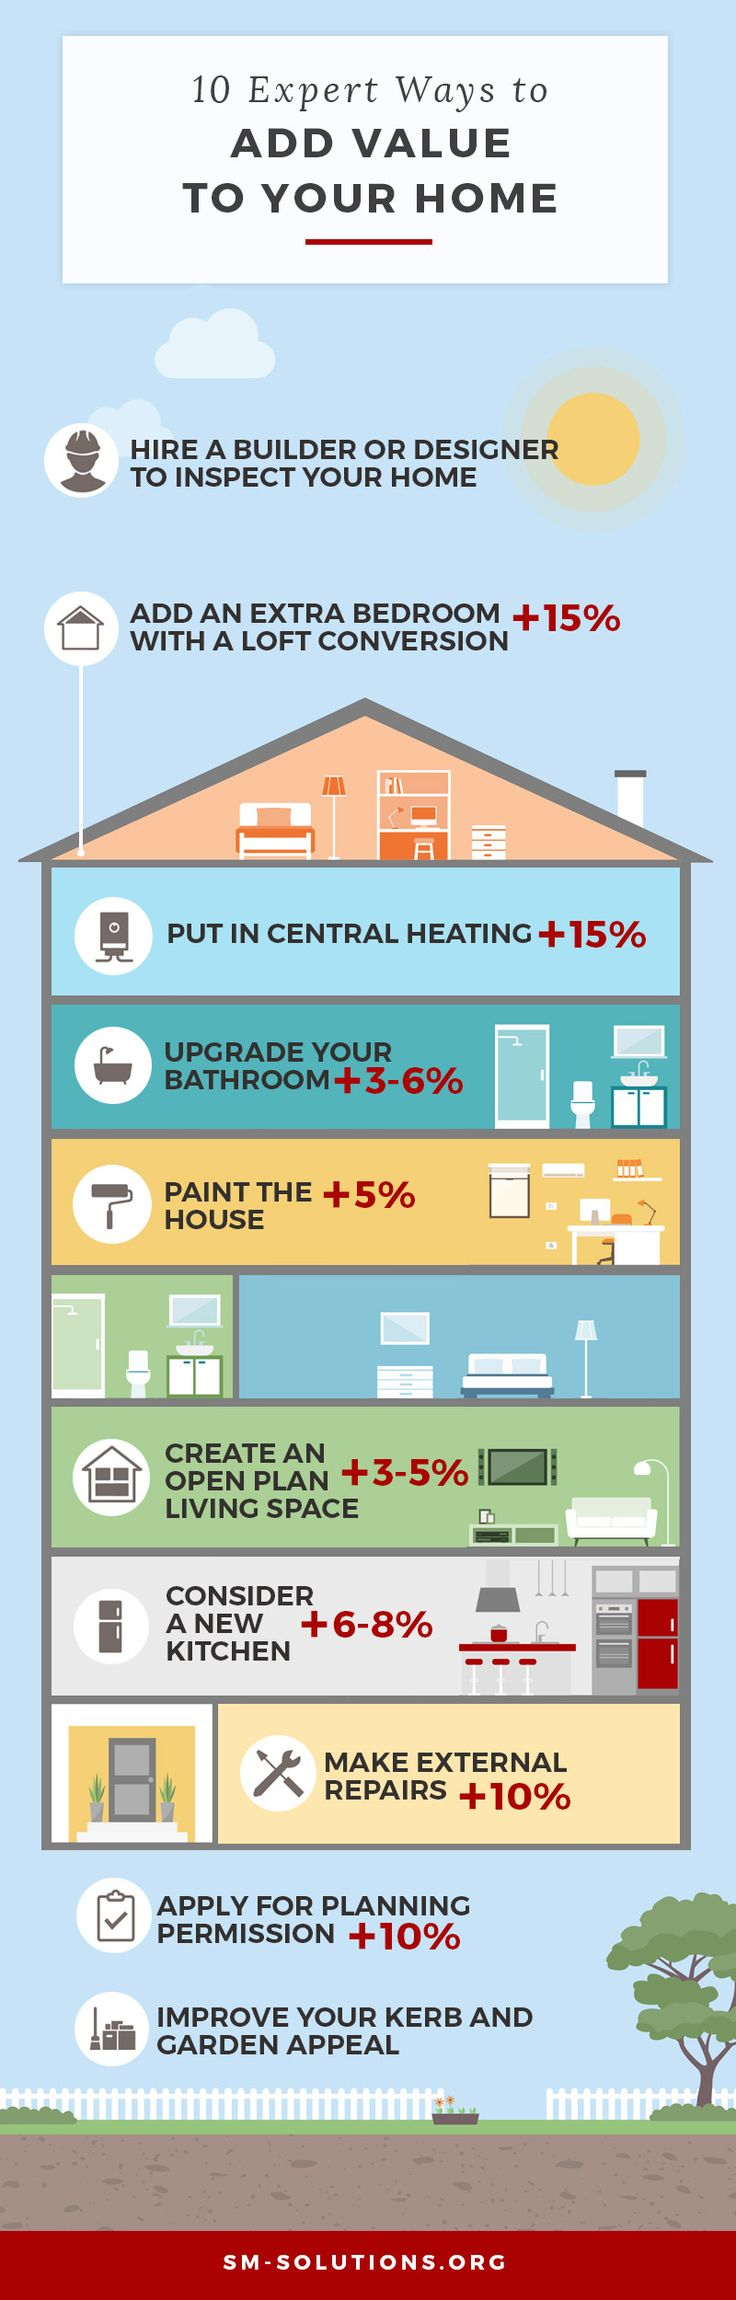 See More 10 Expert Ways To Add Value Your Home Our Experts Have Compiled A List